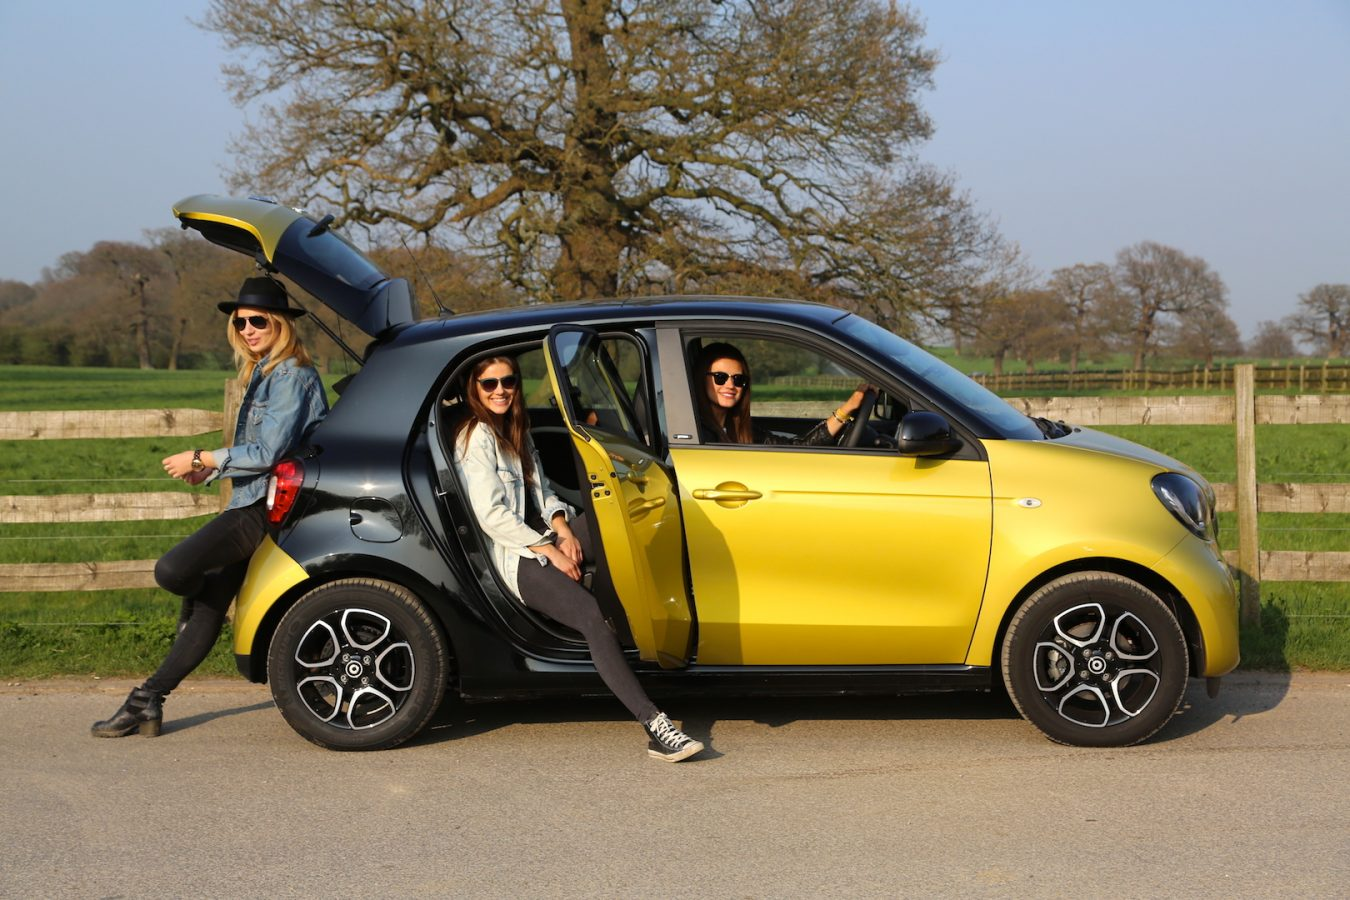 2015 smart forfour review the london economic. Black Bedroom Furniture Sets. Home Design Ideas